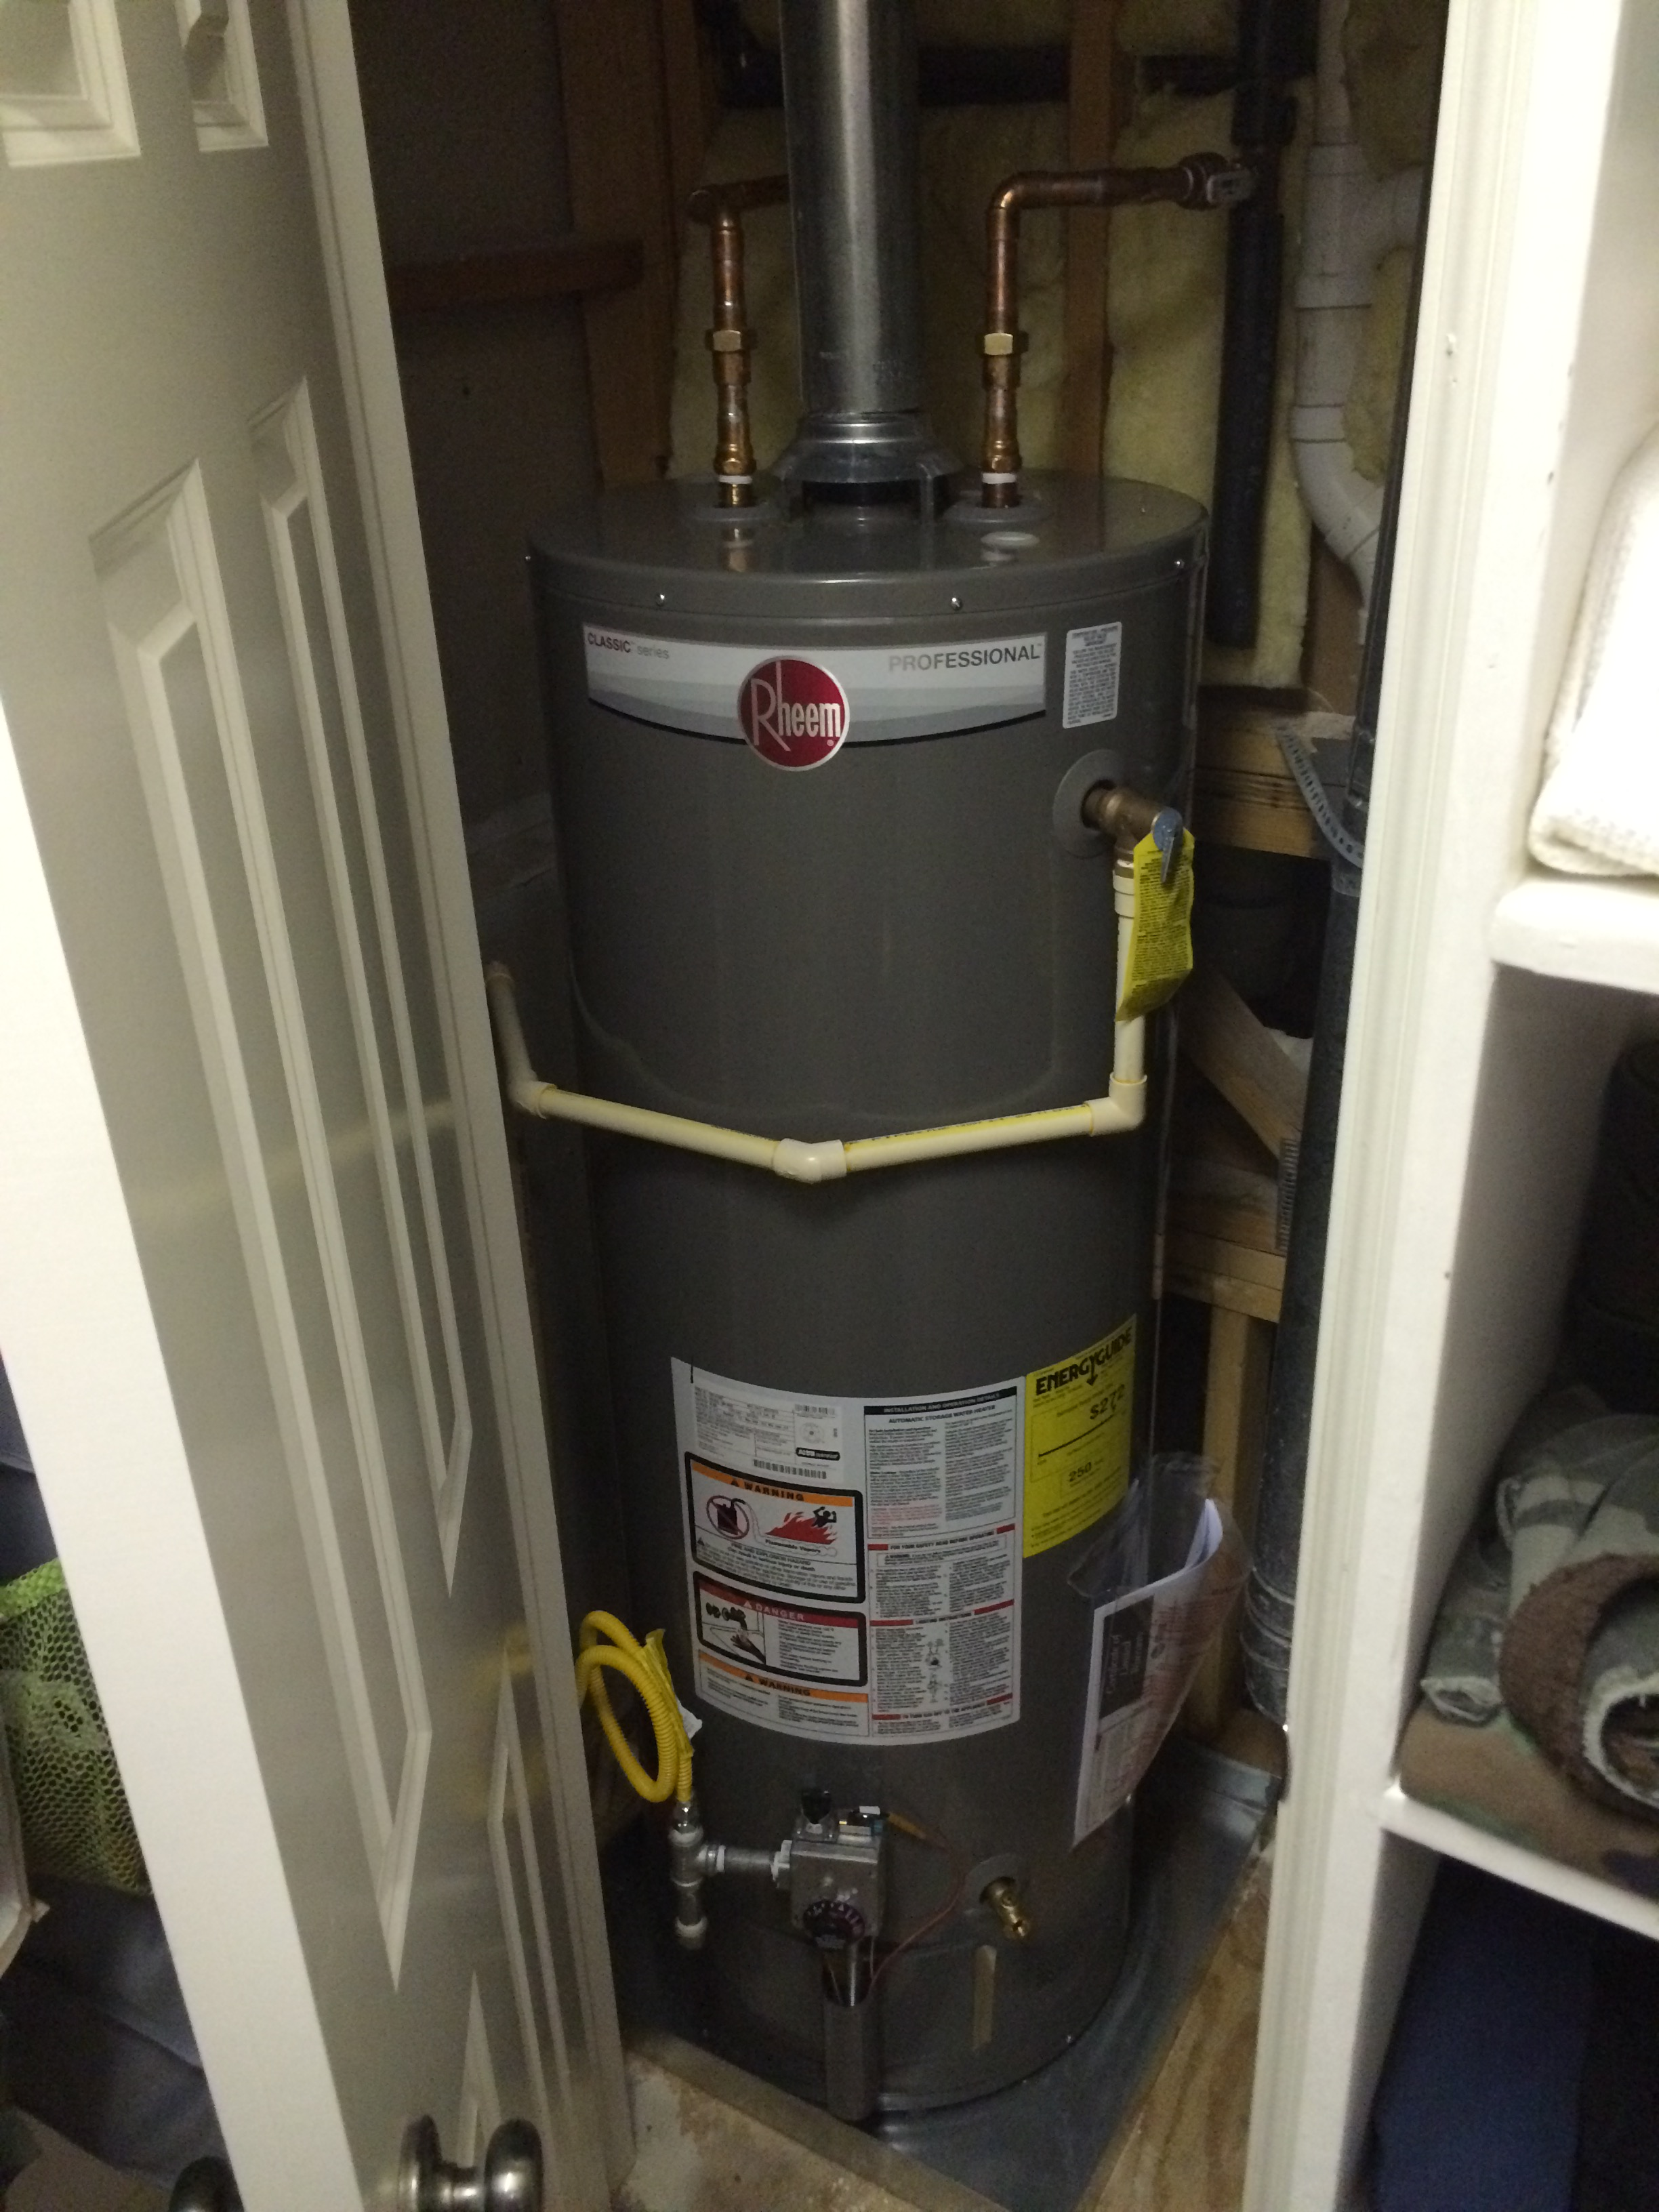 ... Tank Type Water Heater Installed In Closet Space ...